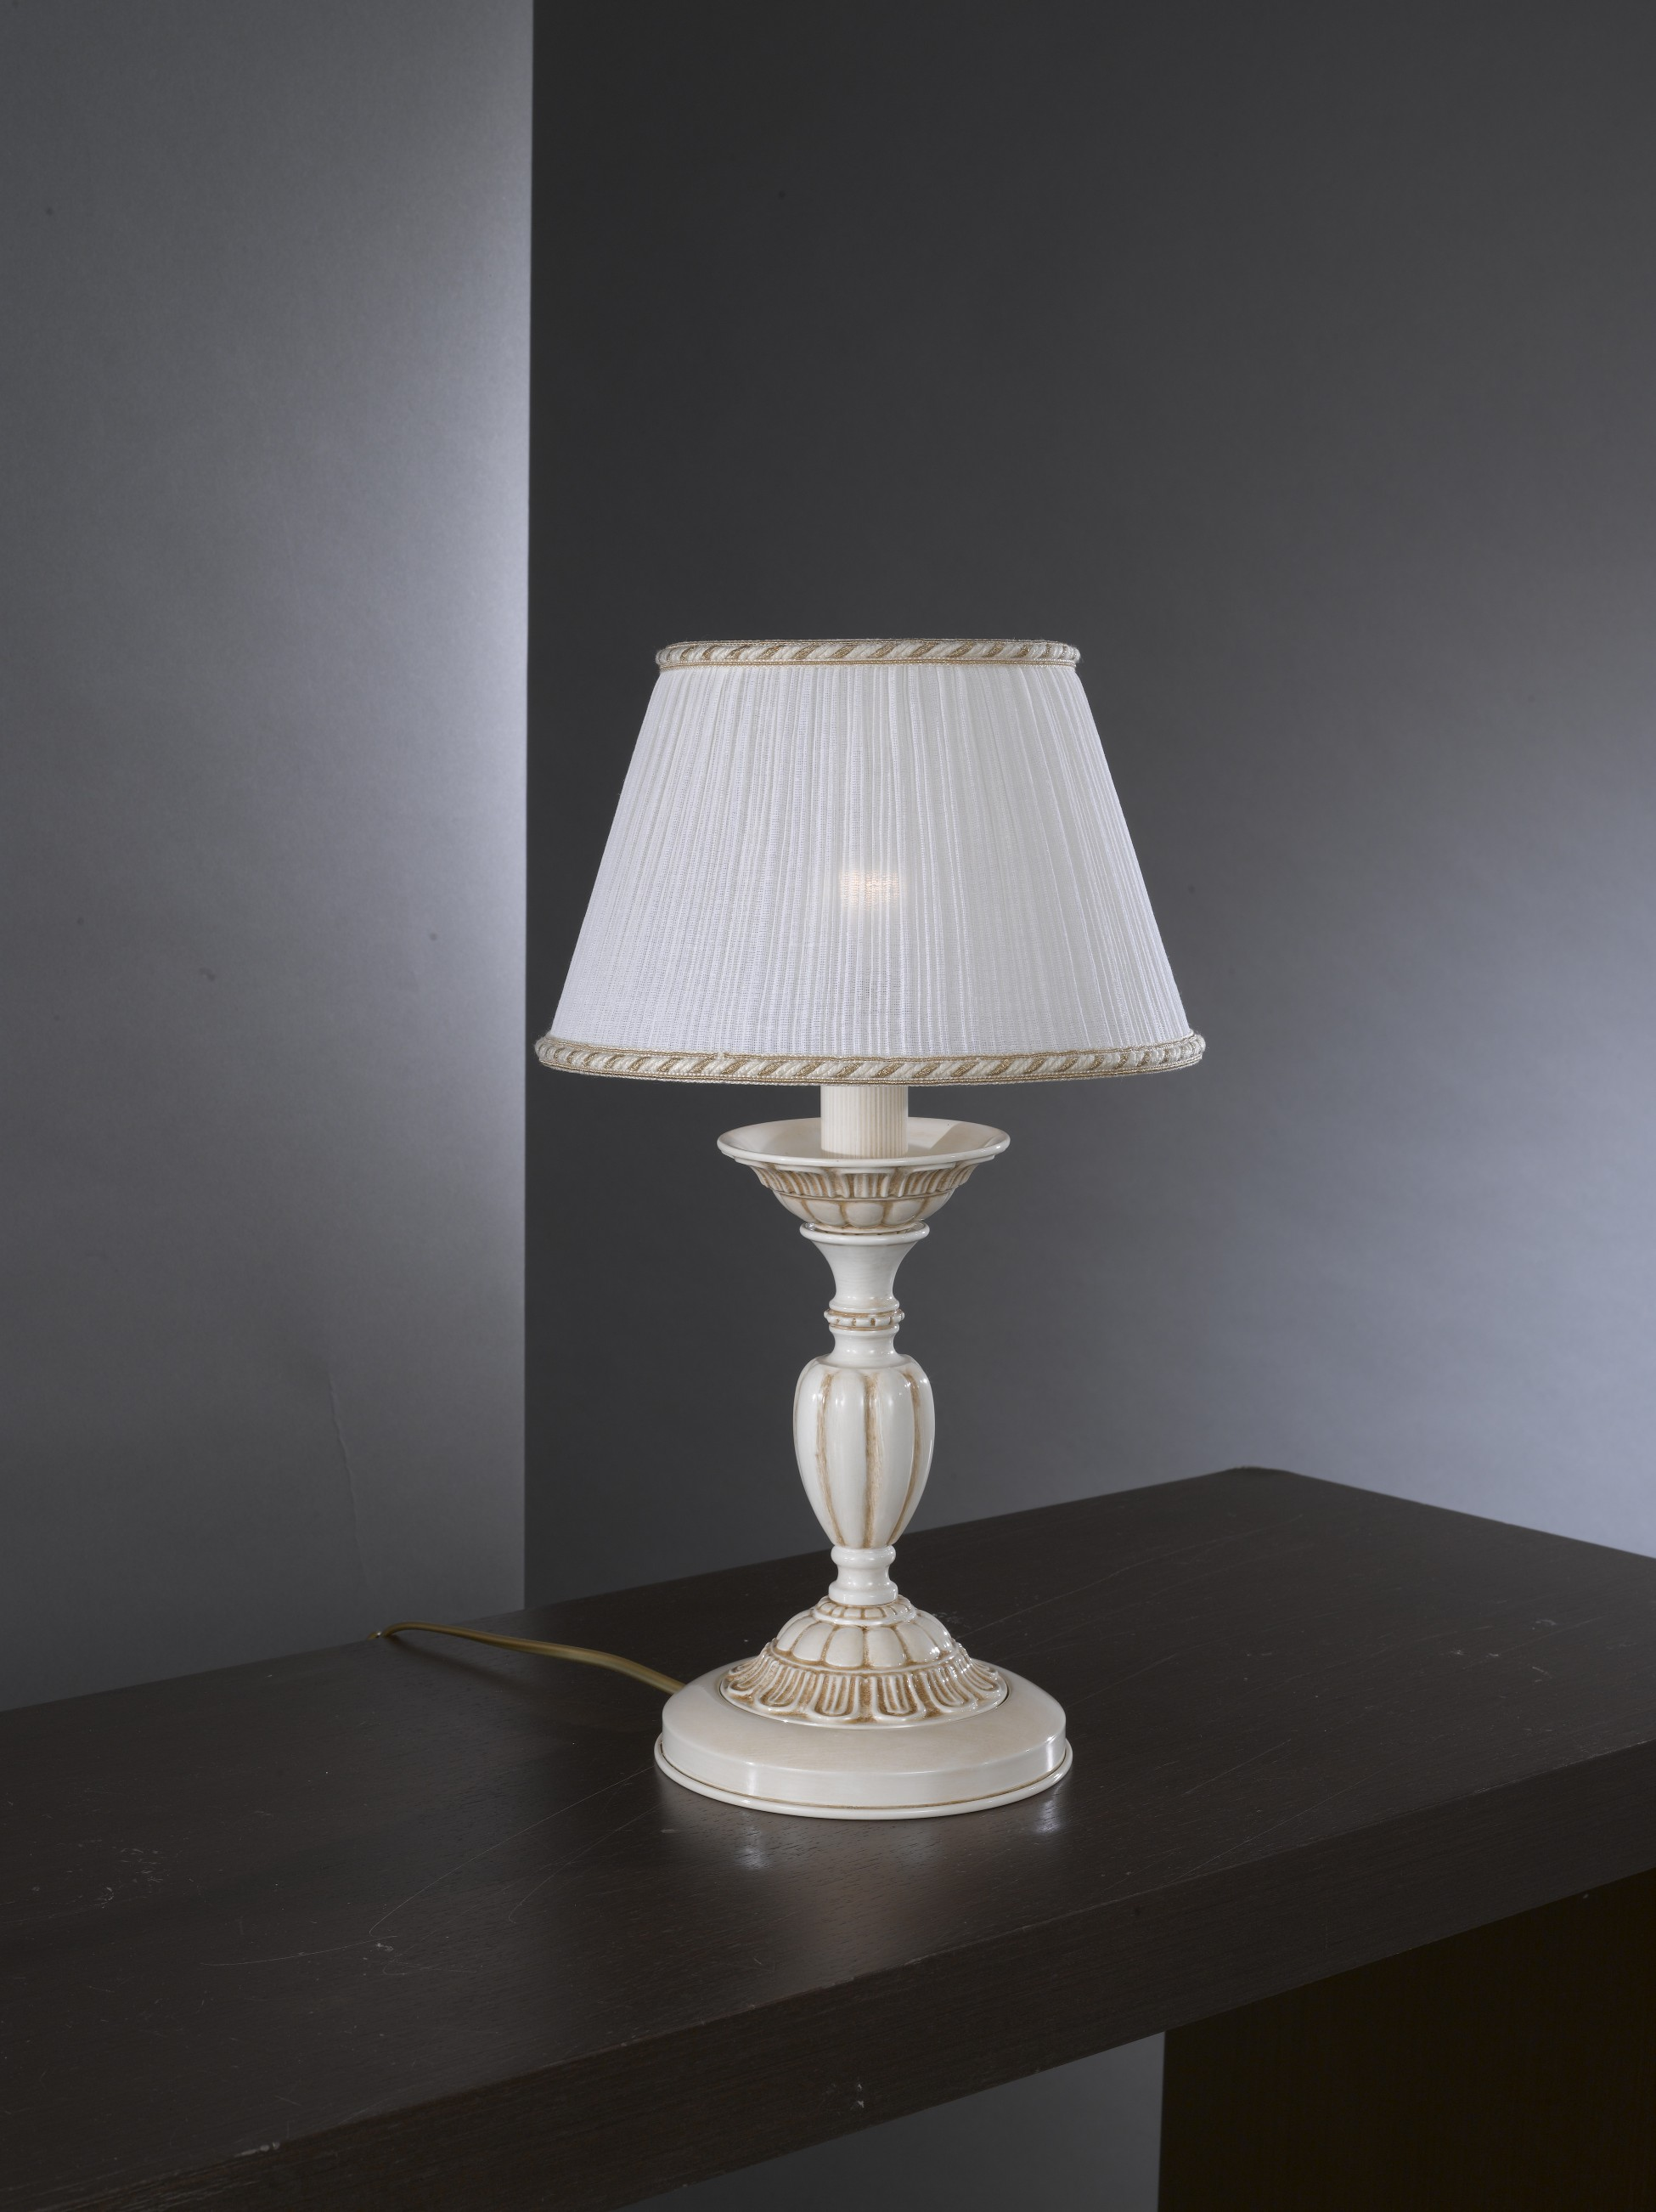 Small brass bedside lamp with lamp shade reccagni store for Bedside table lamp shades